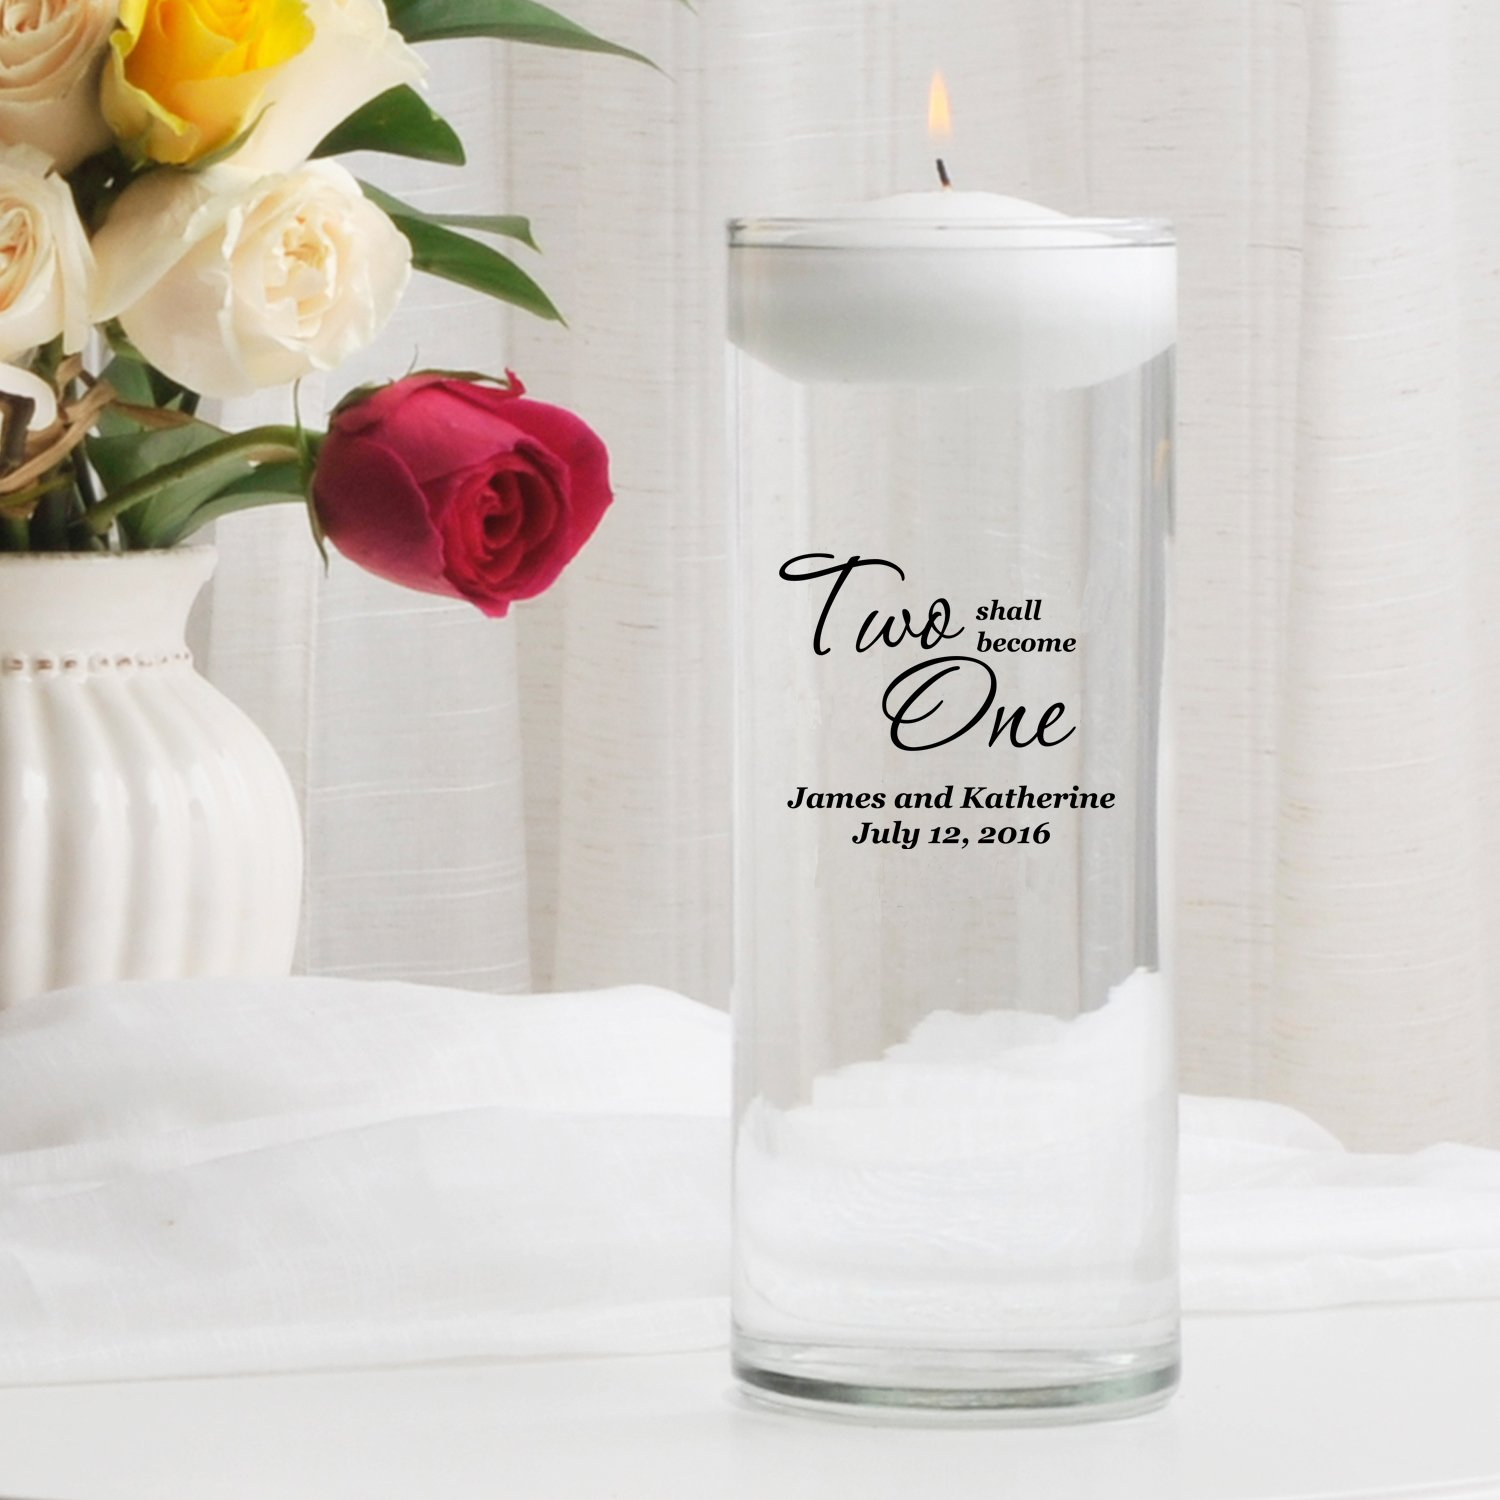 Personalized Floating Wedding Unity Candle- Two Shall Become One